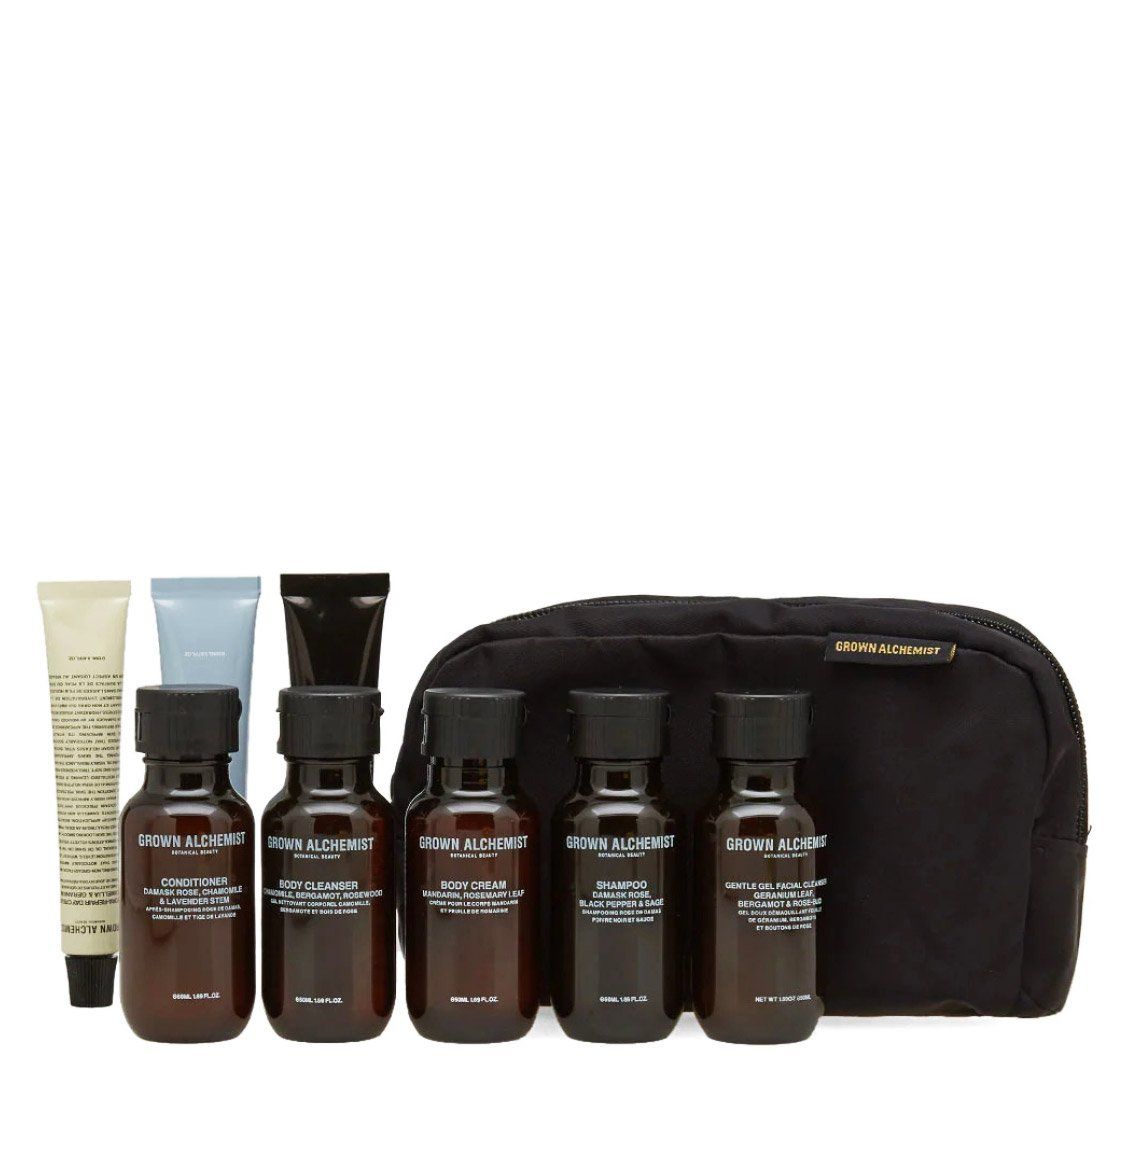 Grown Alchemist Travel Kit facial cleanser 50ml body cleanser 50ml body cream 30ml shampoo 50ml conditioner 50ml hand cream 20ml facial exfoliant 20ml day cream 12mlg